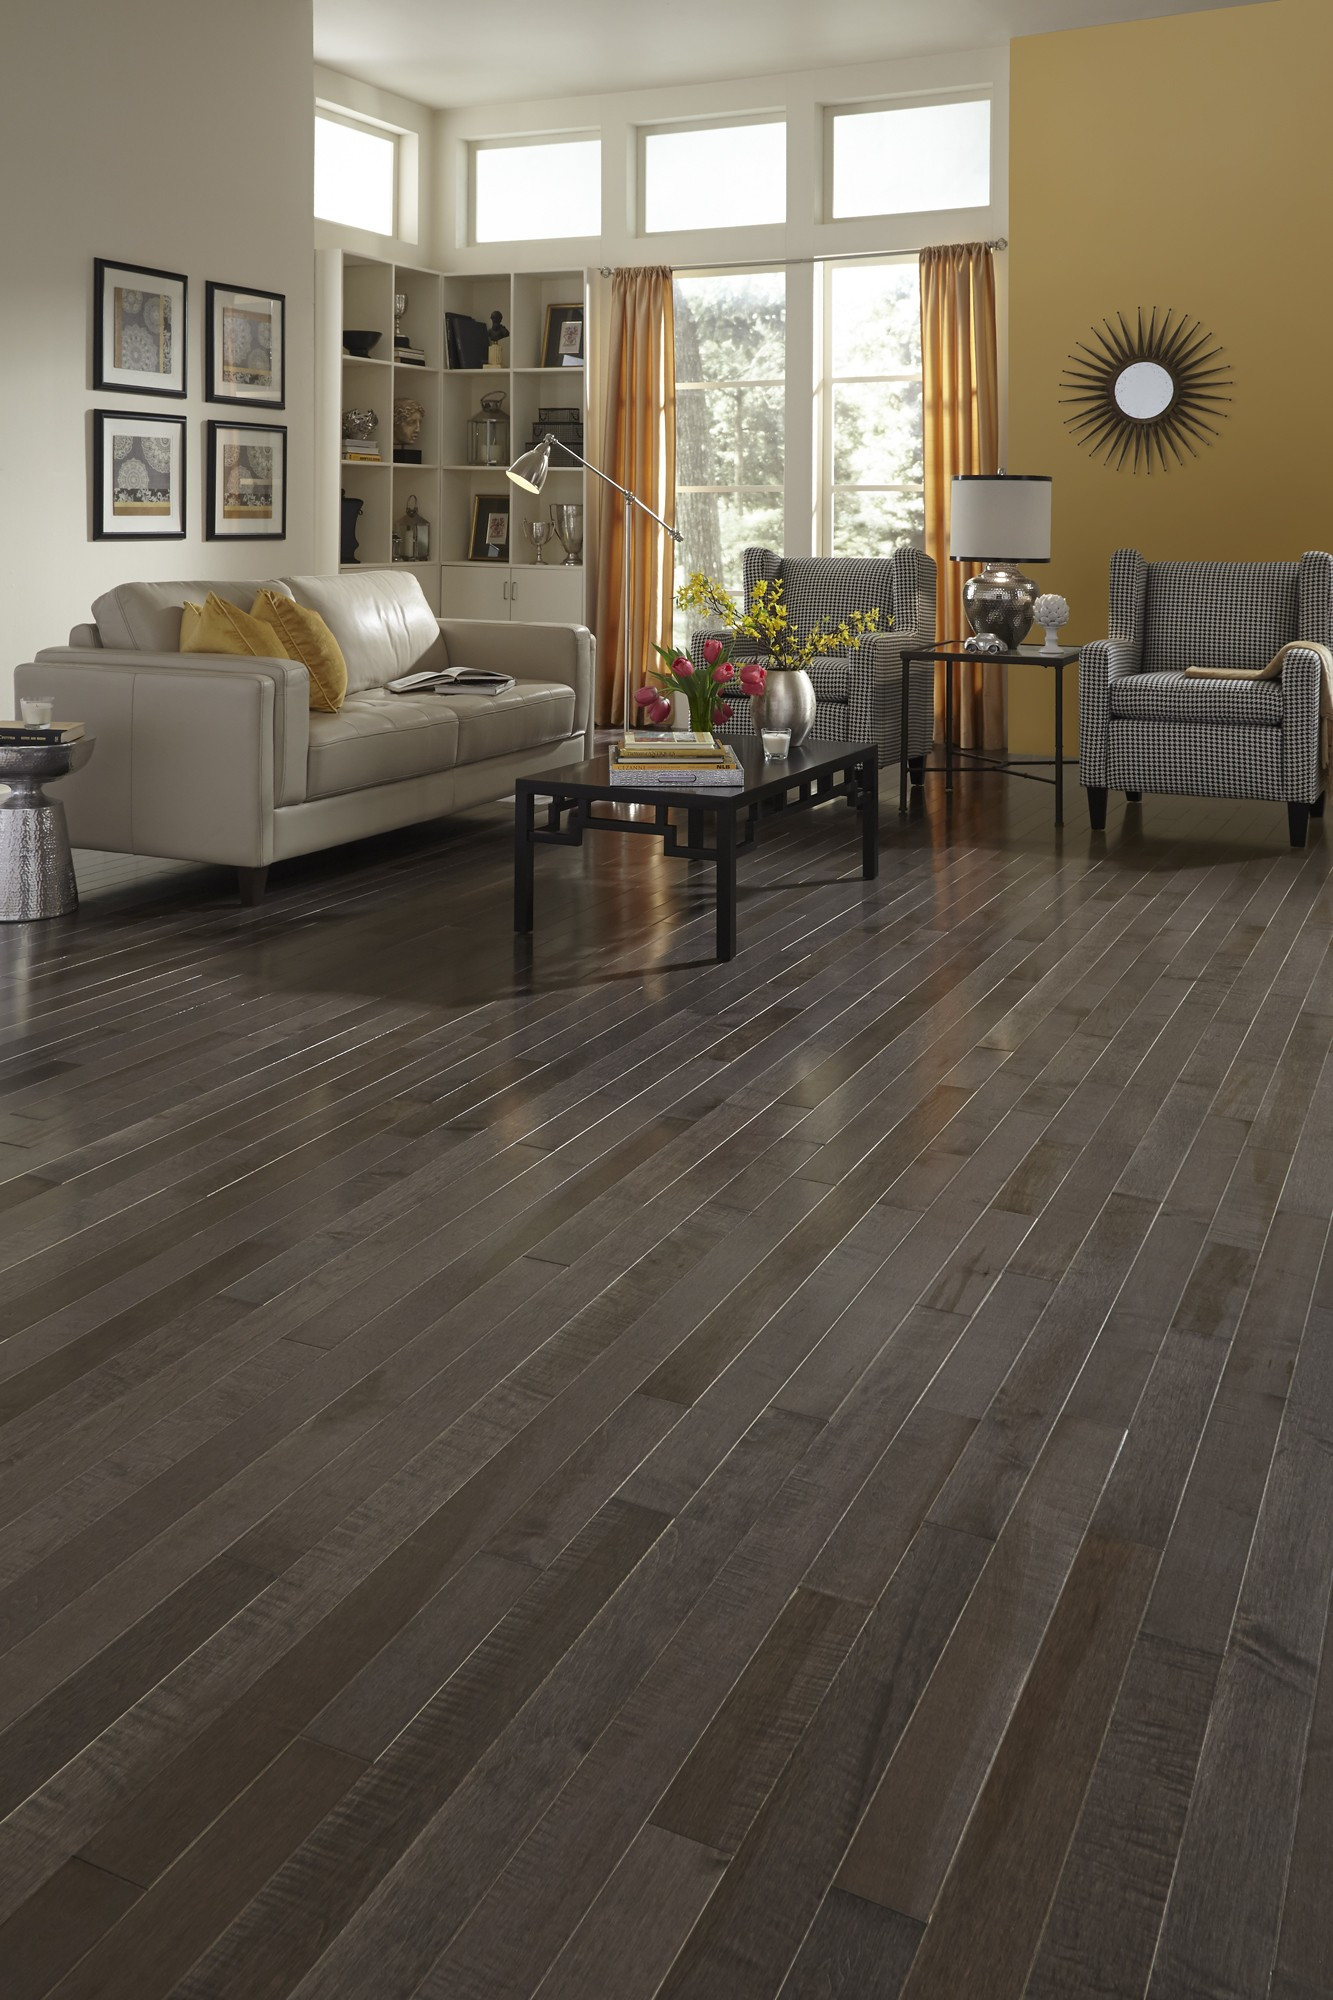 21 Trendy Best Hardwood Floors Los Angeles 2021 free download best hardwood floors los angeles of 15 elegant how much is hardwood flooring pics dizpos com regarding how much is hardwood flooring awesome august s top floors social gallery of 15 elegant